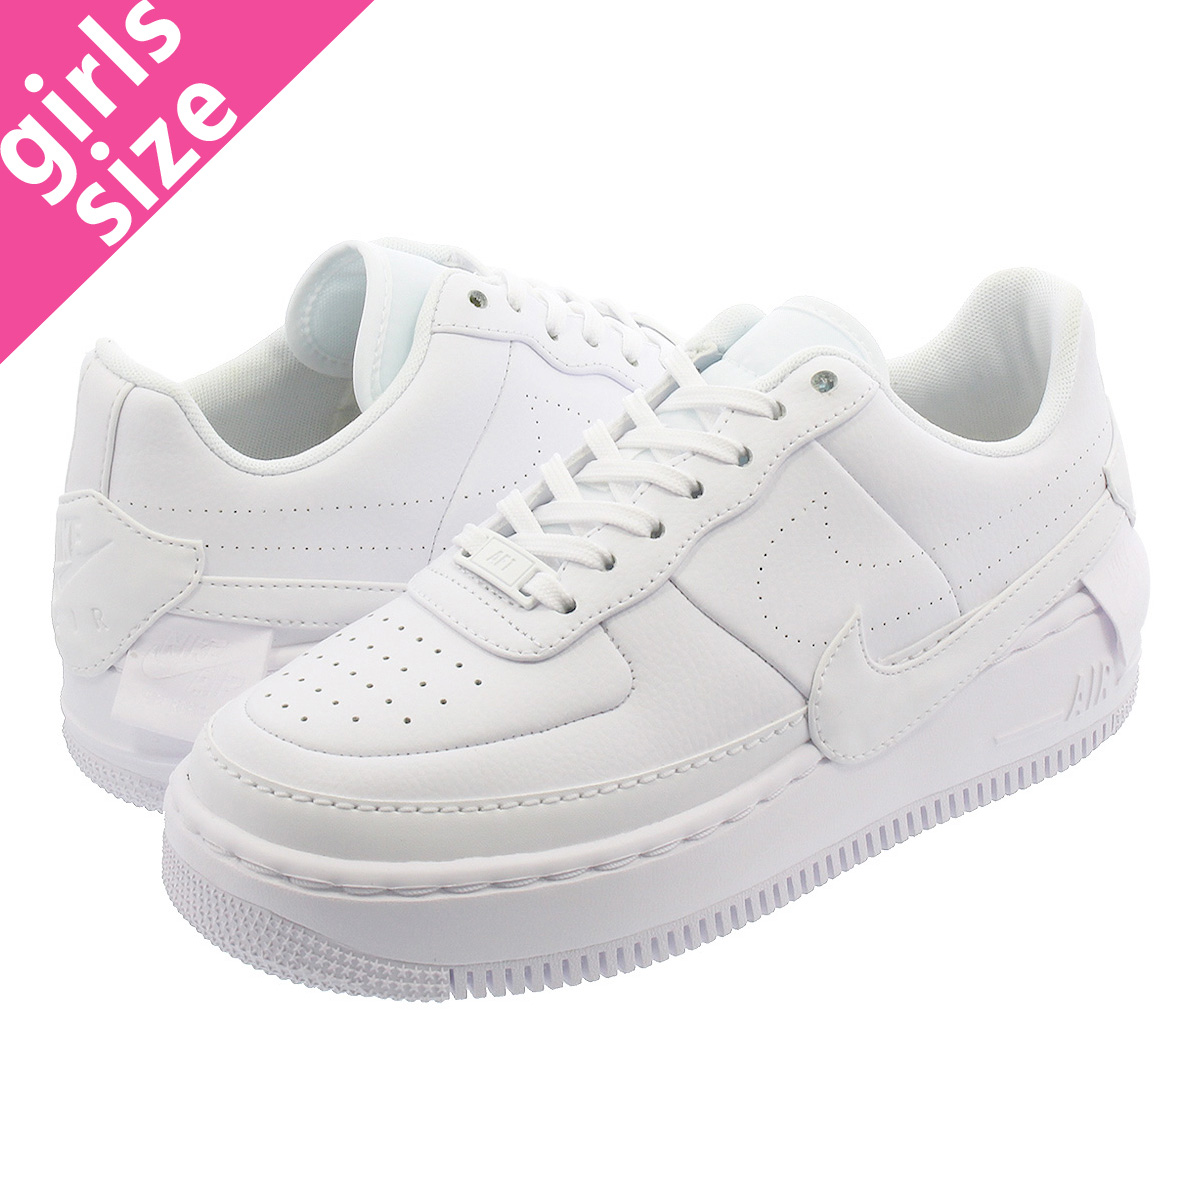 ee1d388ff8 NIKE WMNS AIR FORCE 1 JESTER XX Nike women air force 1 Jester XX  WHITE/WHITE/BLACK ao1220-101